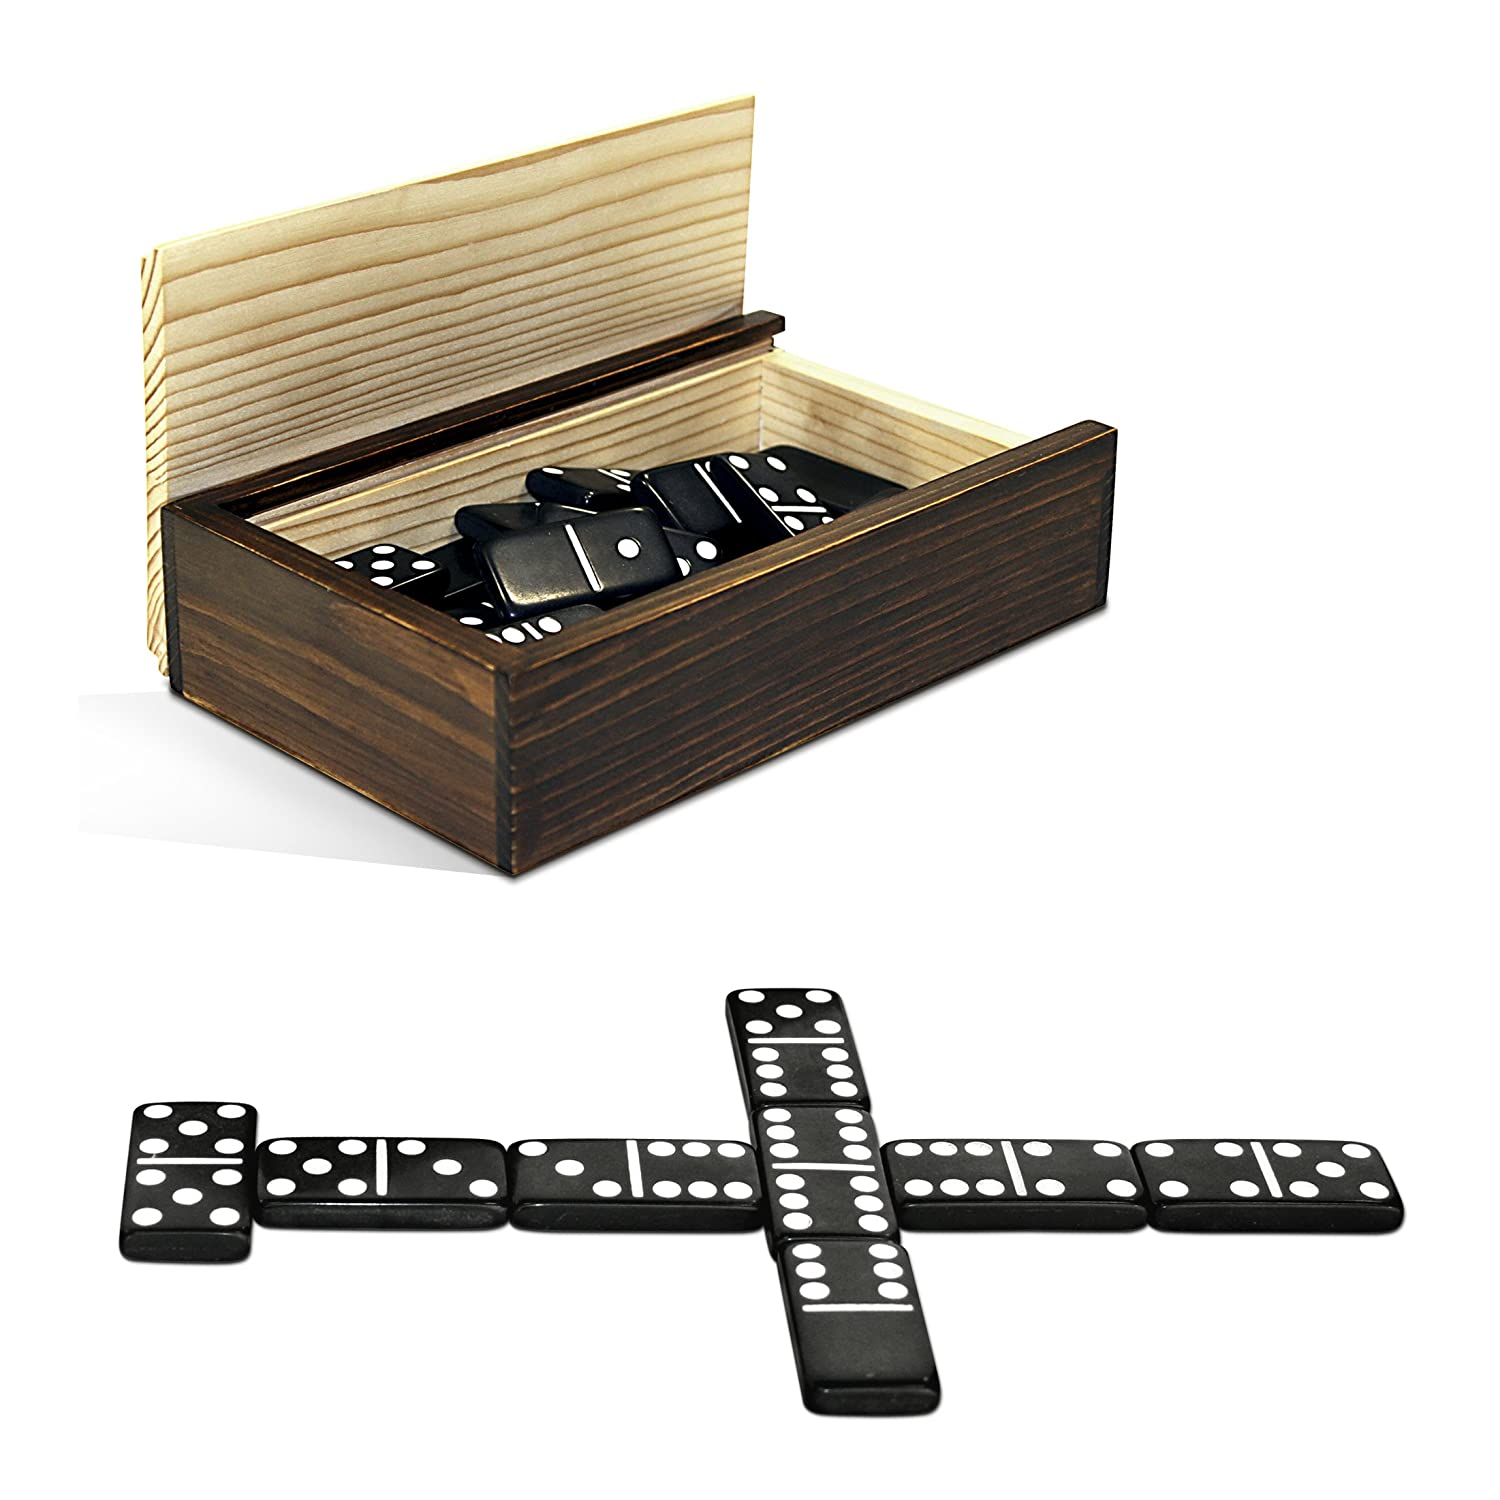 Amazon.com: WE Games Double 6 Black Dominoes with White Dots in ...